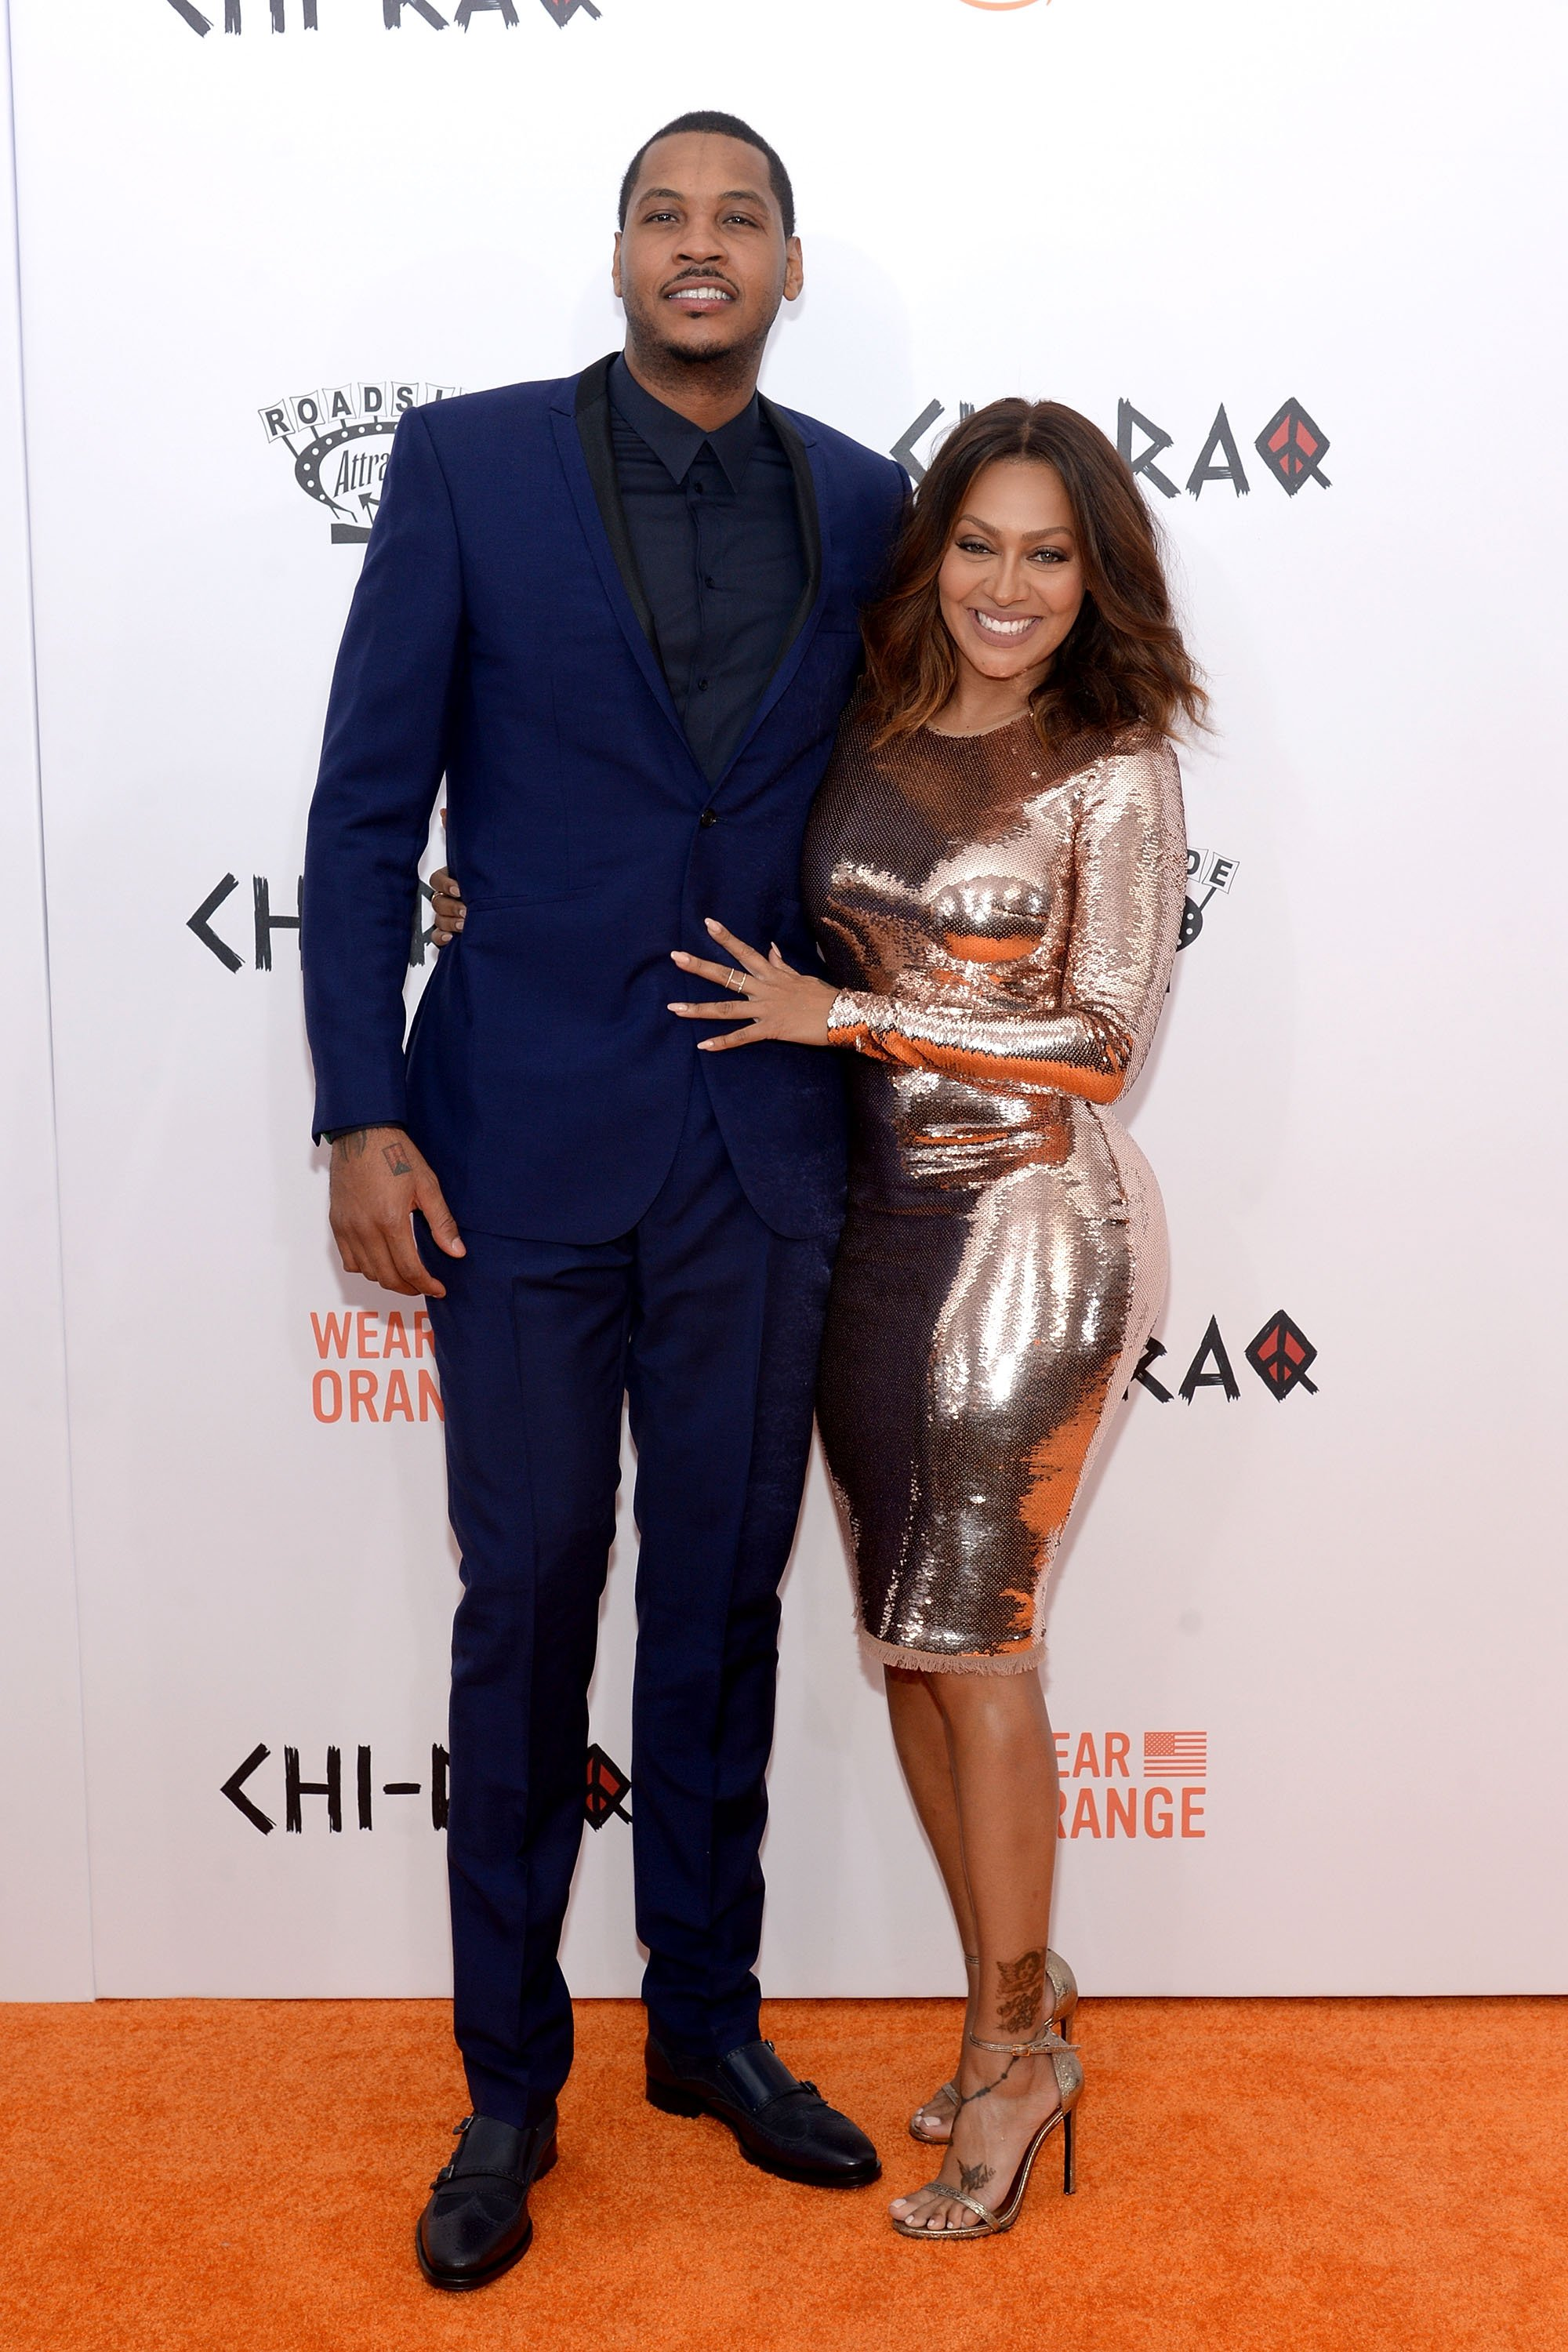 Carmelo Anthony and La La Anthony attend the 'CHI-RAQ' New York Premiere at Ziegfeld Theater on December 1, 2015. | Photo: GettyImages/Global Images of Ukraine